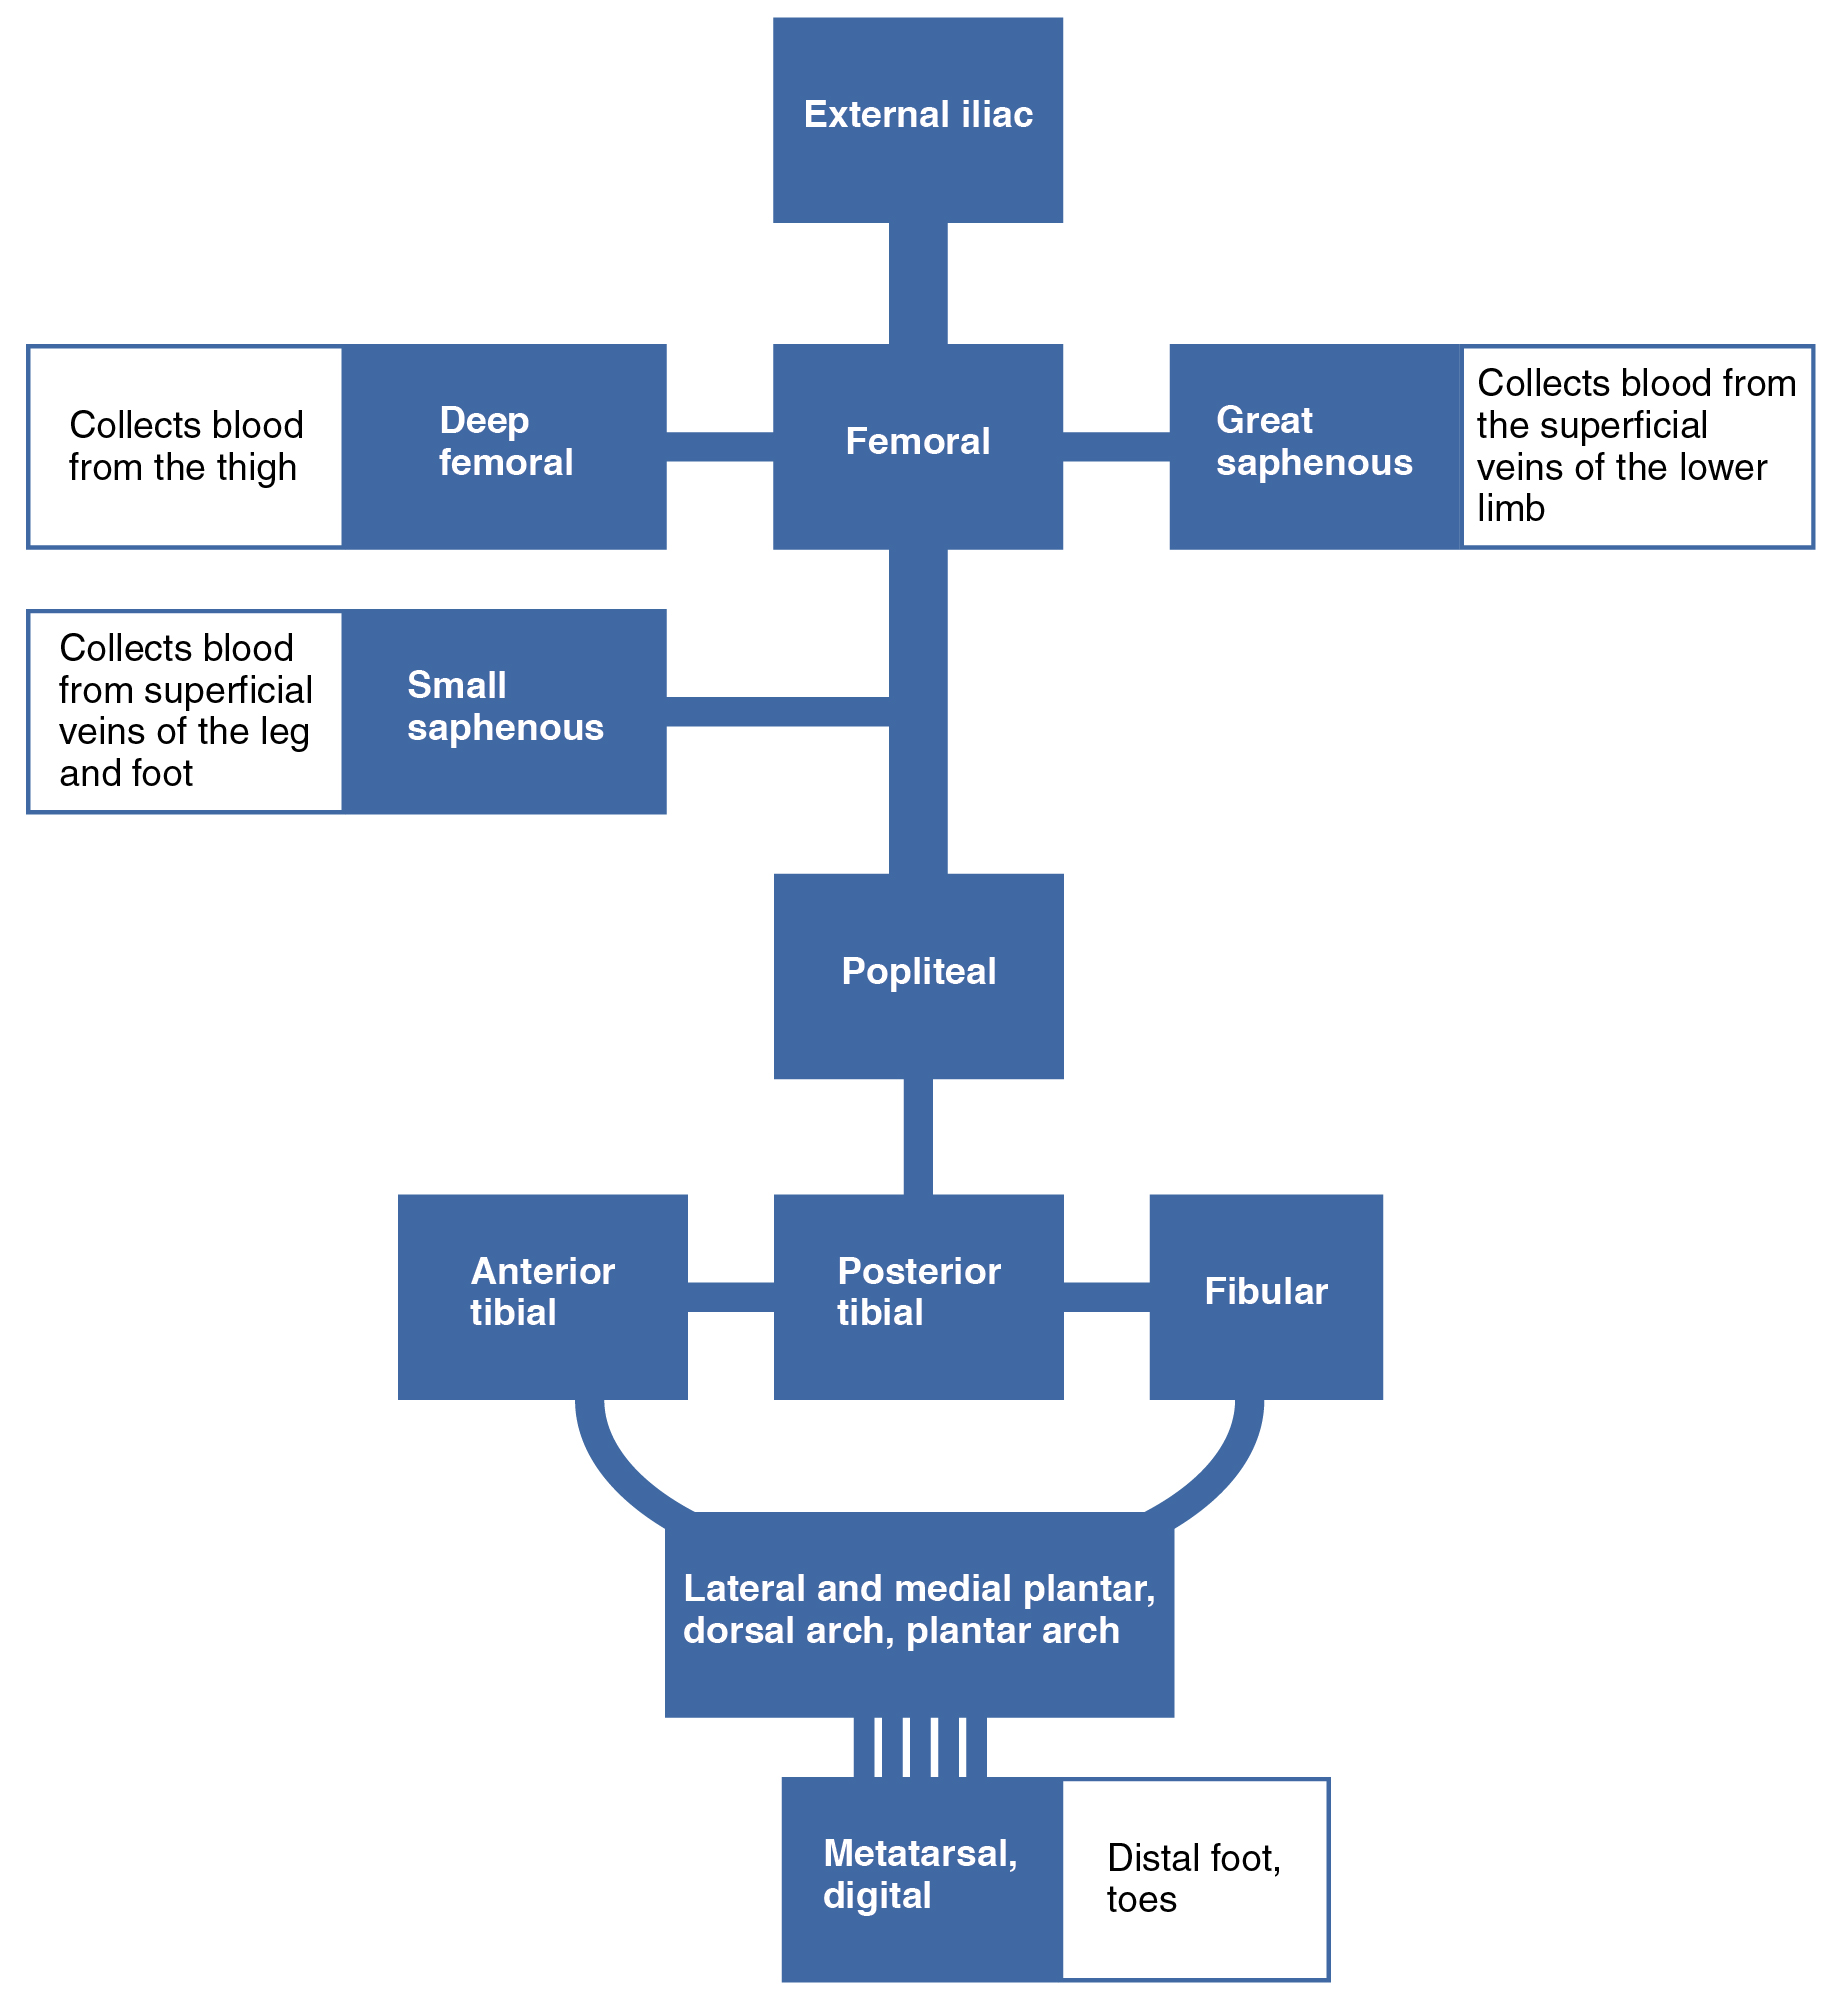 Circulatory pathways anatomy and physiology the flow chart summarizes venous flow from the lower limb nvjuhfo Gallery